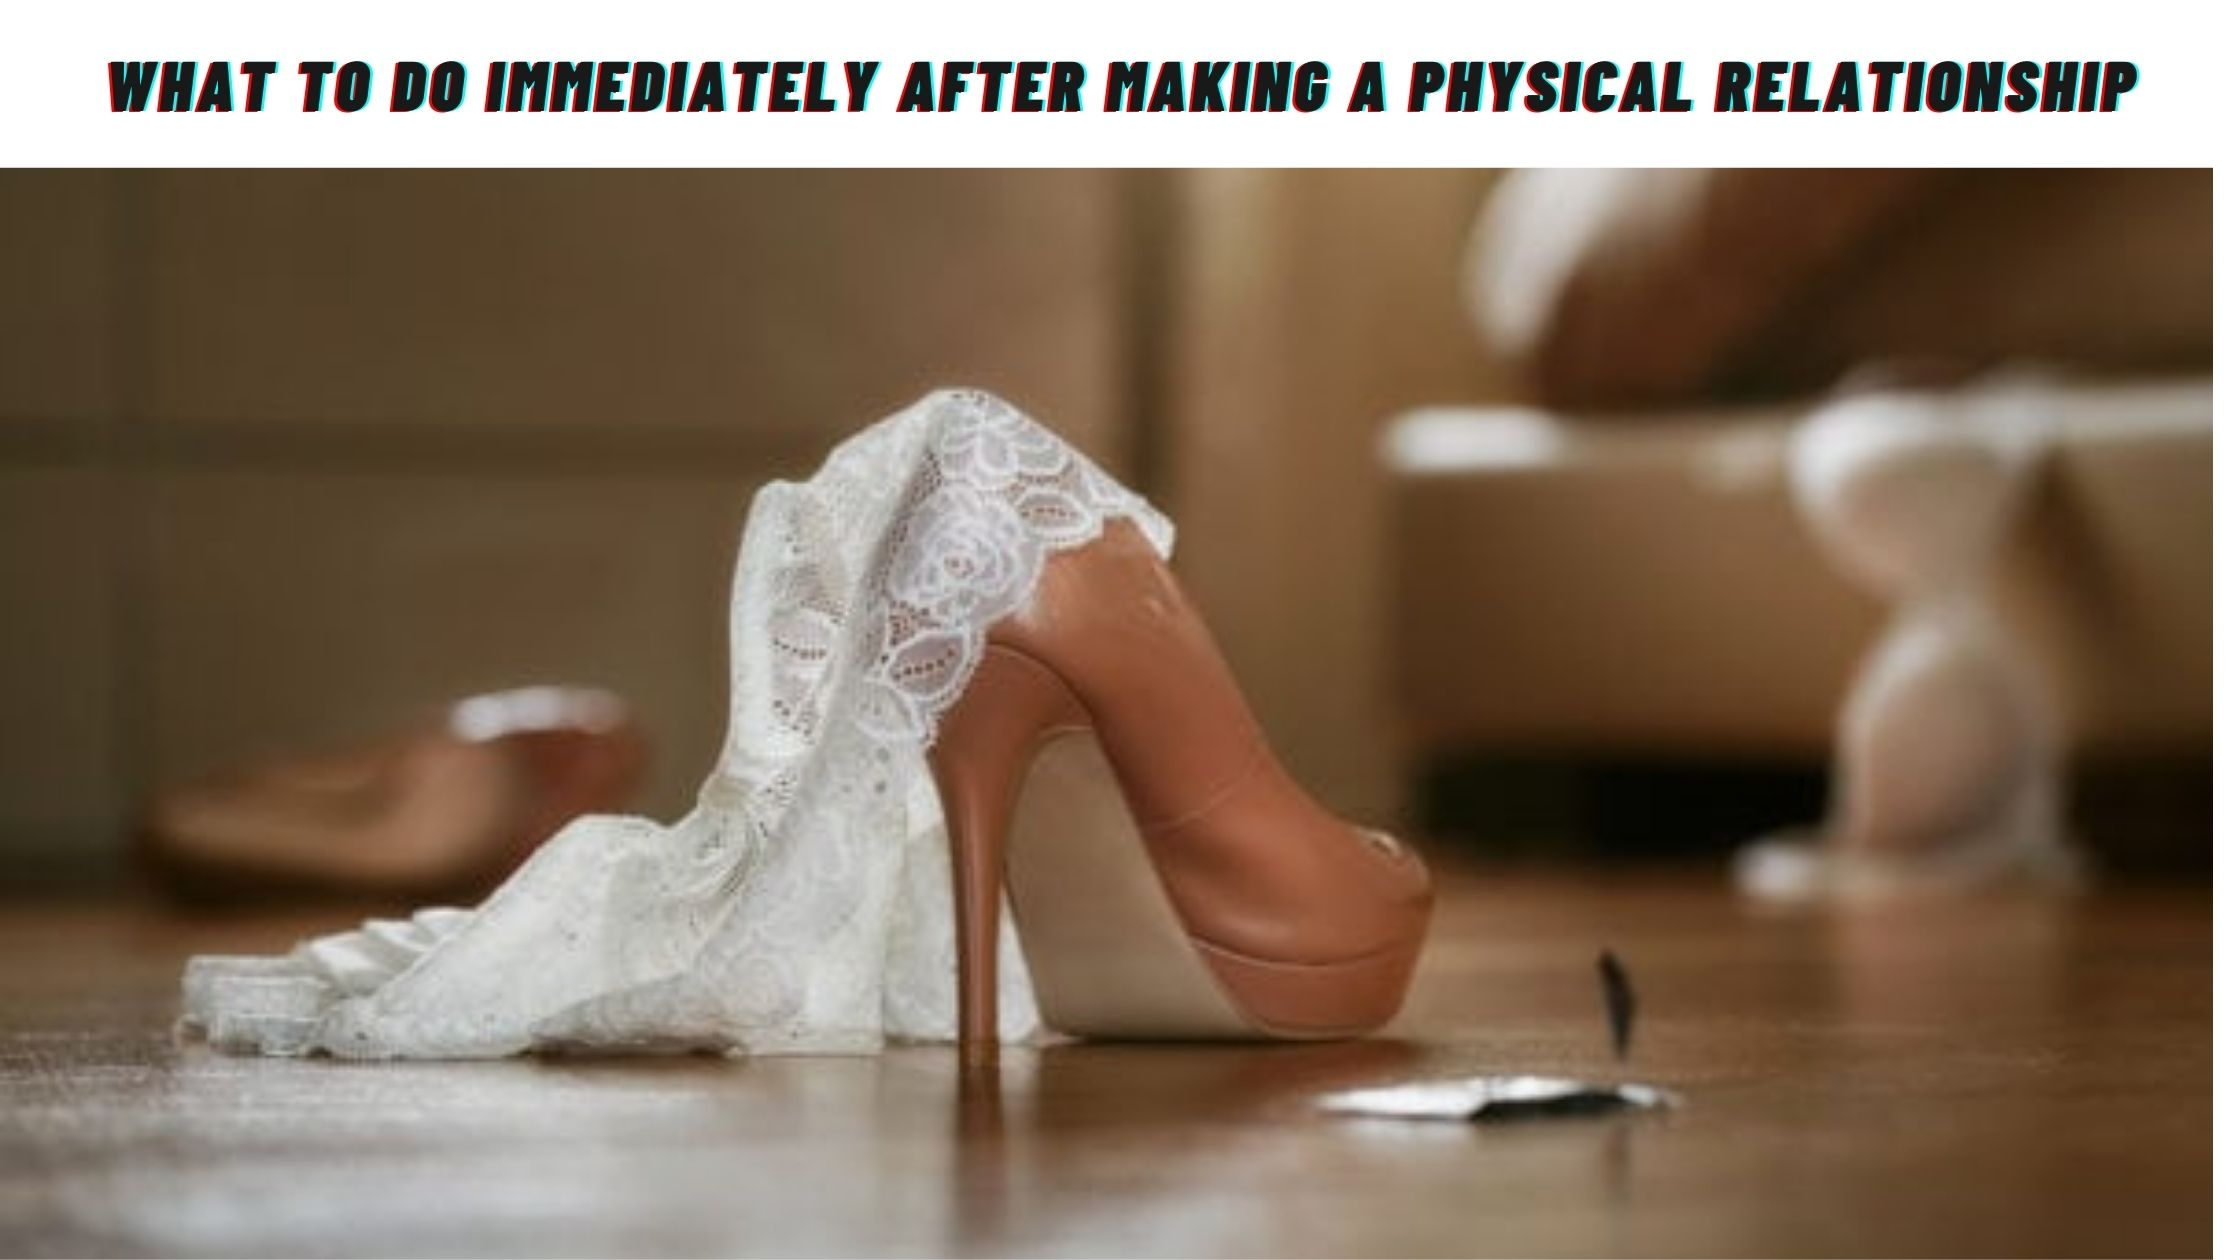 What to do immediately after making a physical relationship